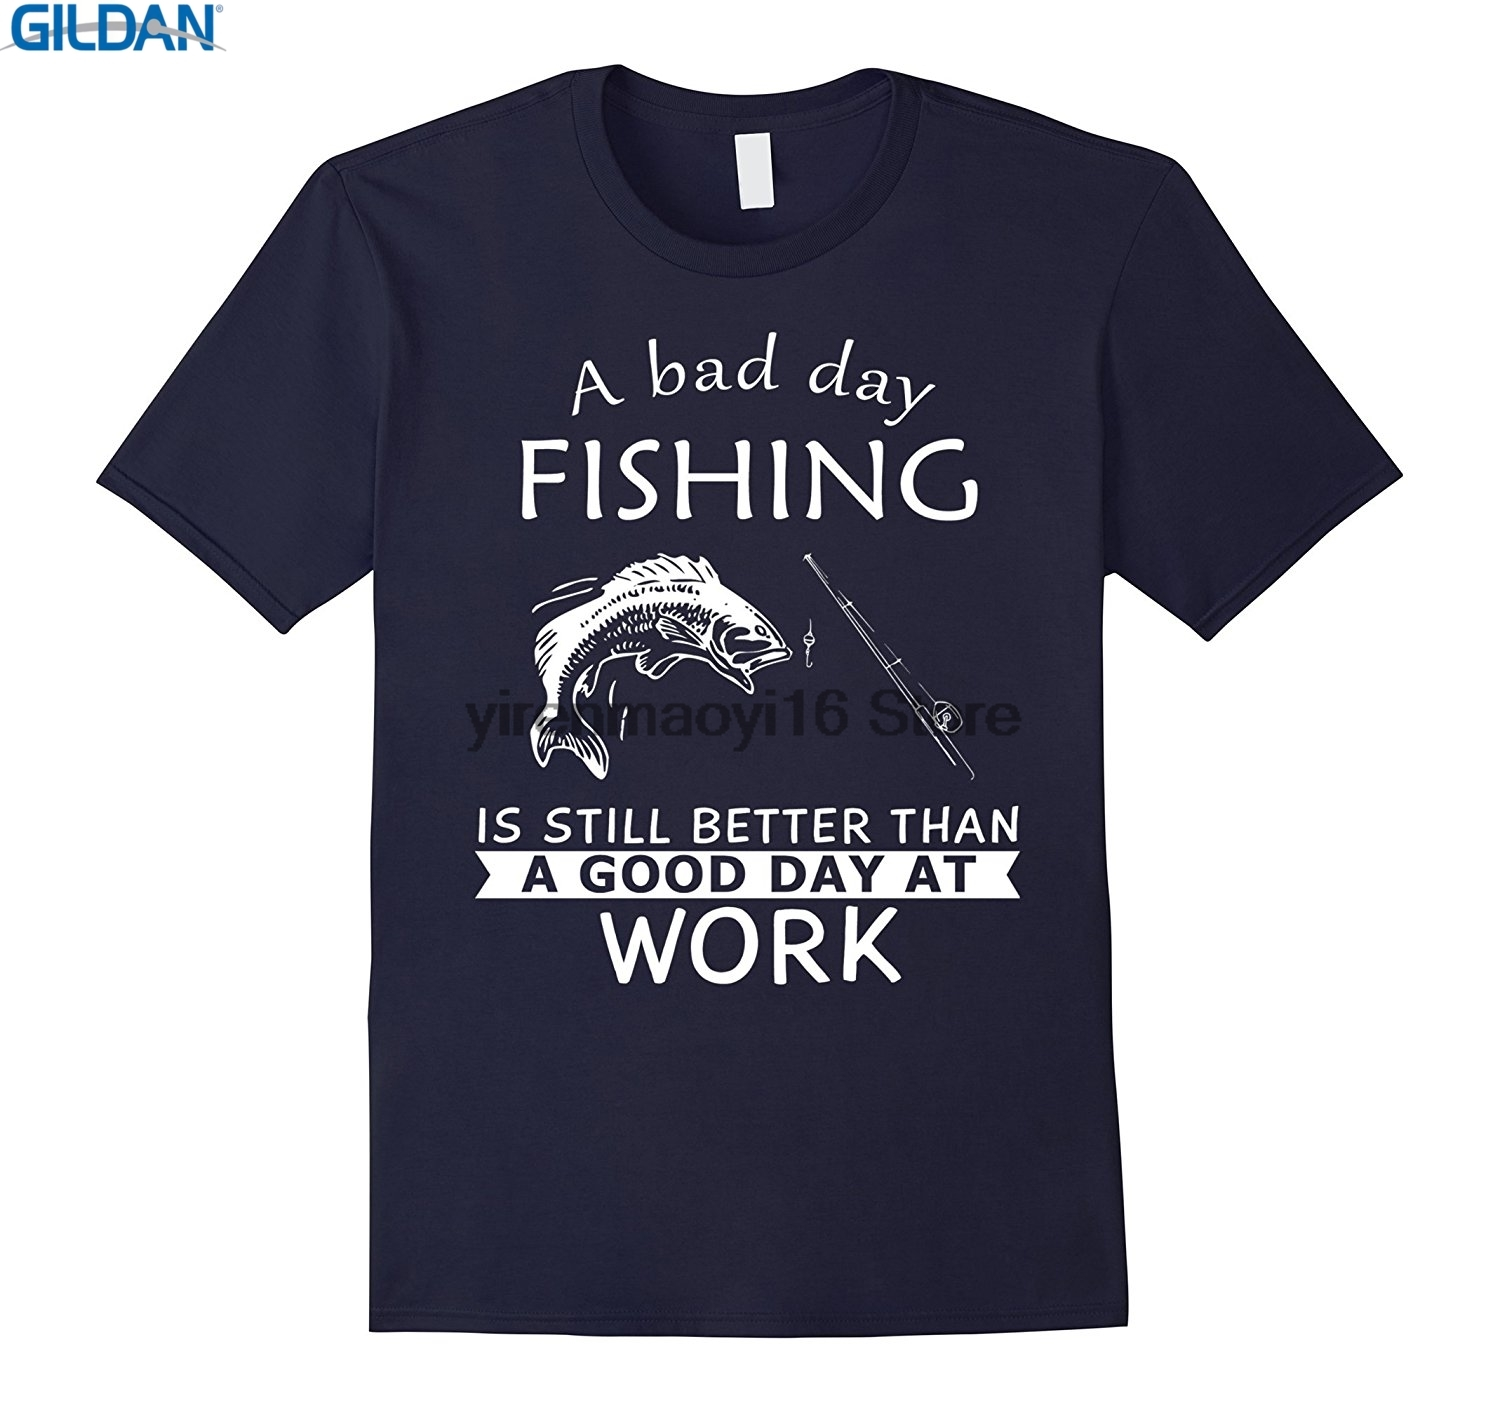 GILDAN 100% Cotton O-neck custom printed T-shirt A Bad Day Is Still Better Than A Good Day At Work